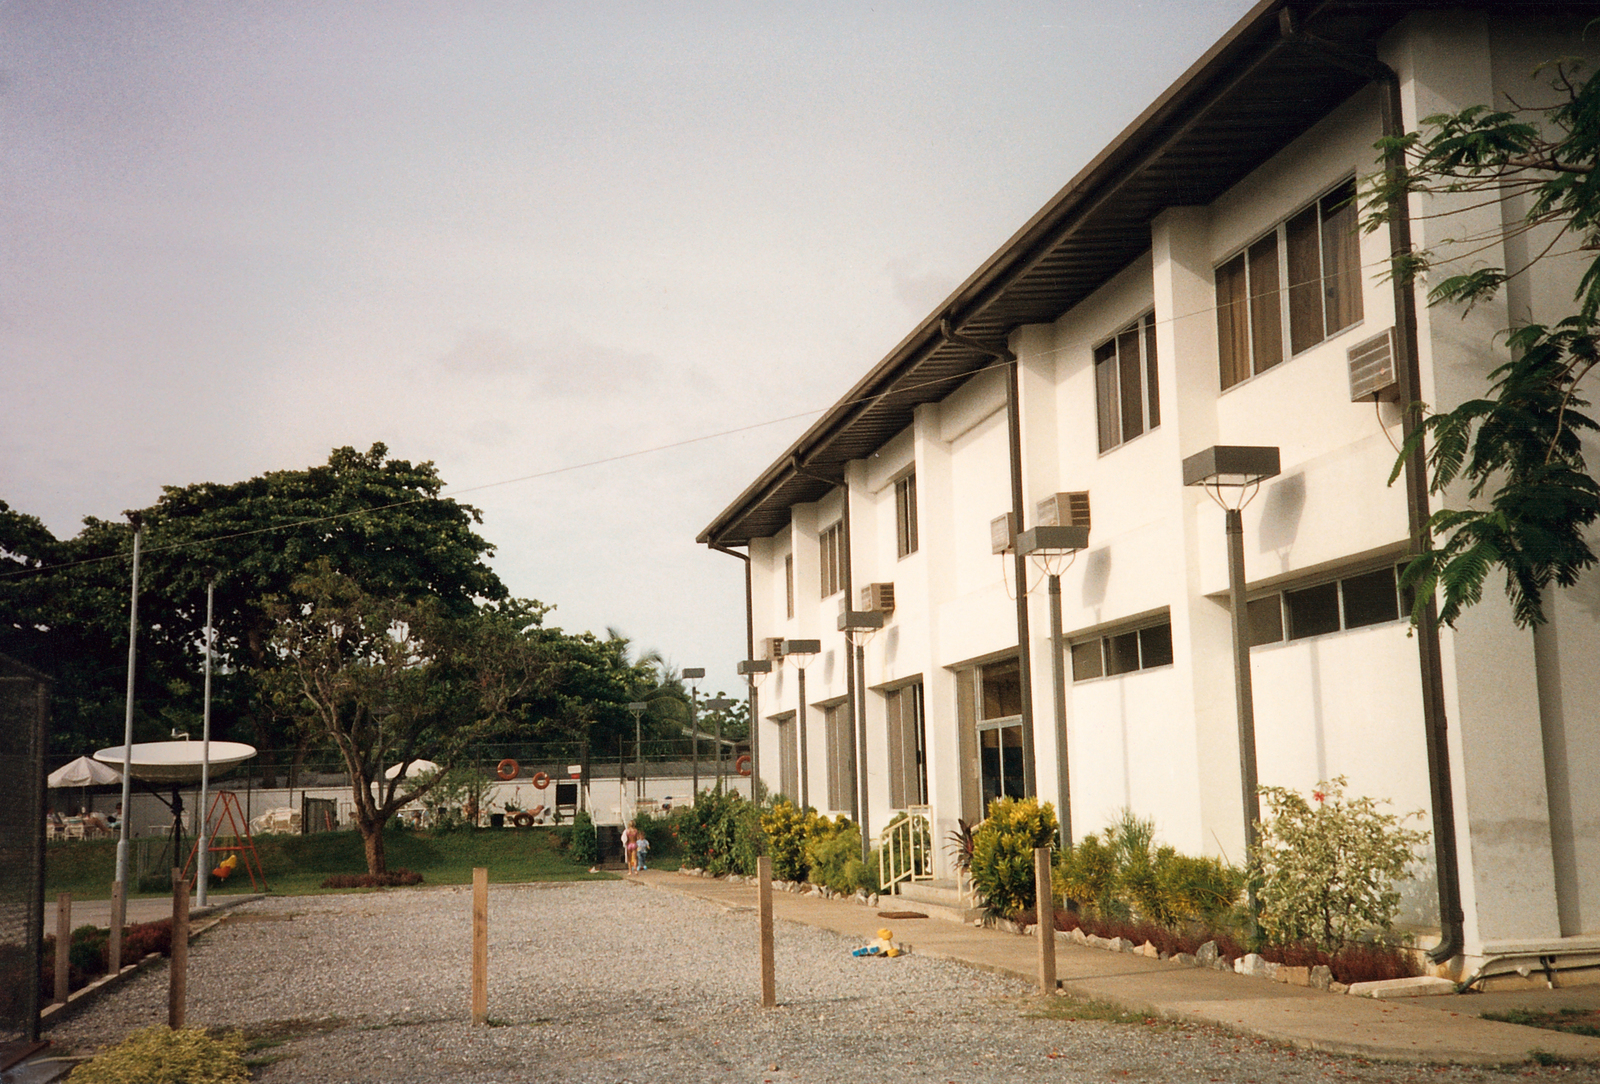 Lagos - Recreation/Community Center/Gym/Theater - 1989